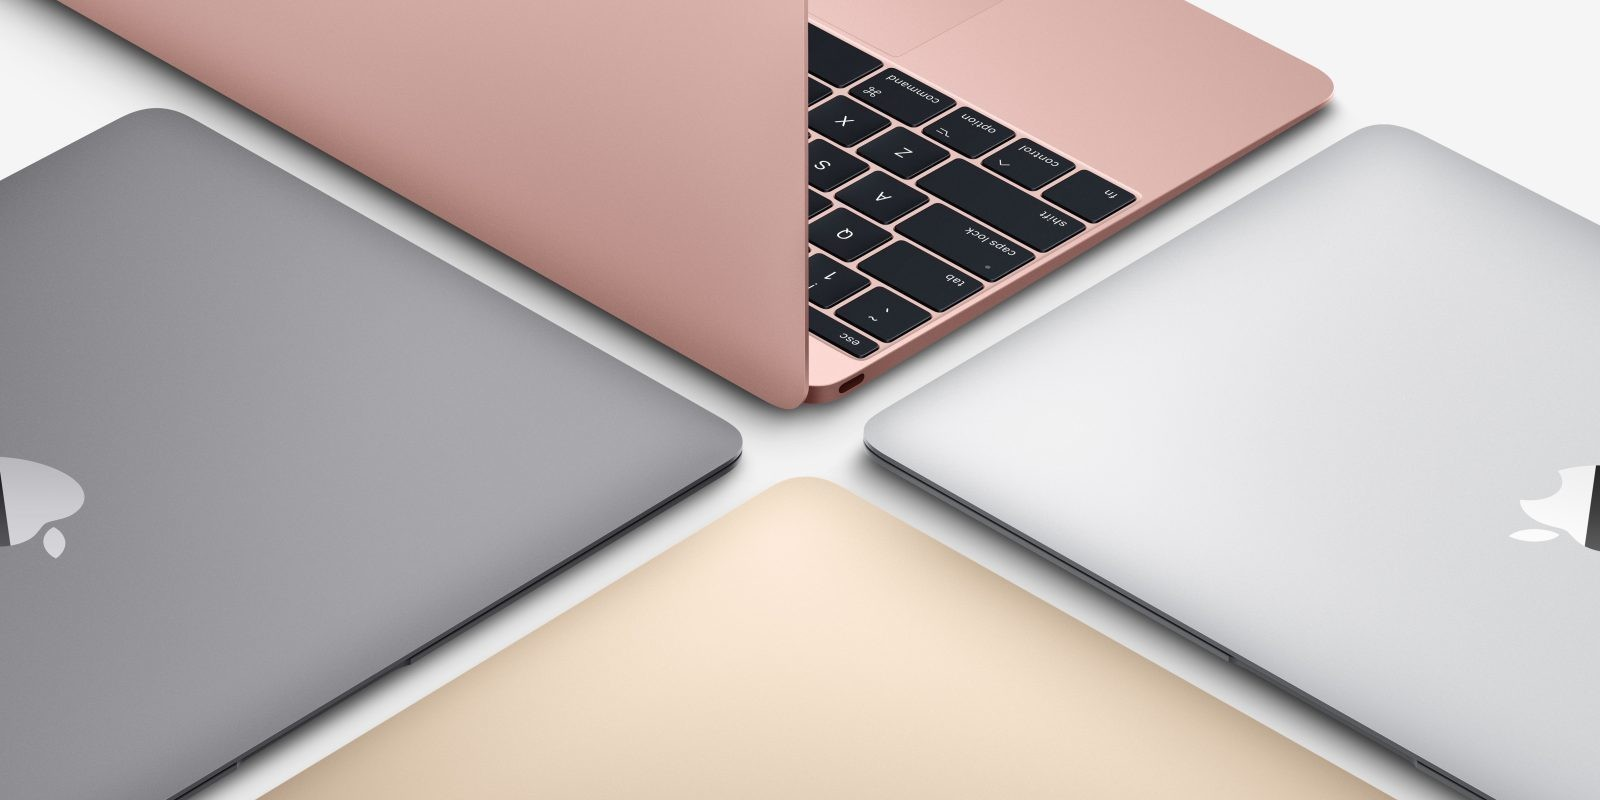 New lower-cost 13-inch Retina MacBook reported to debut in June, iPad refresh coming